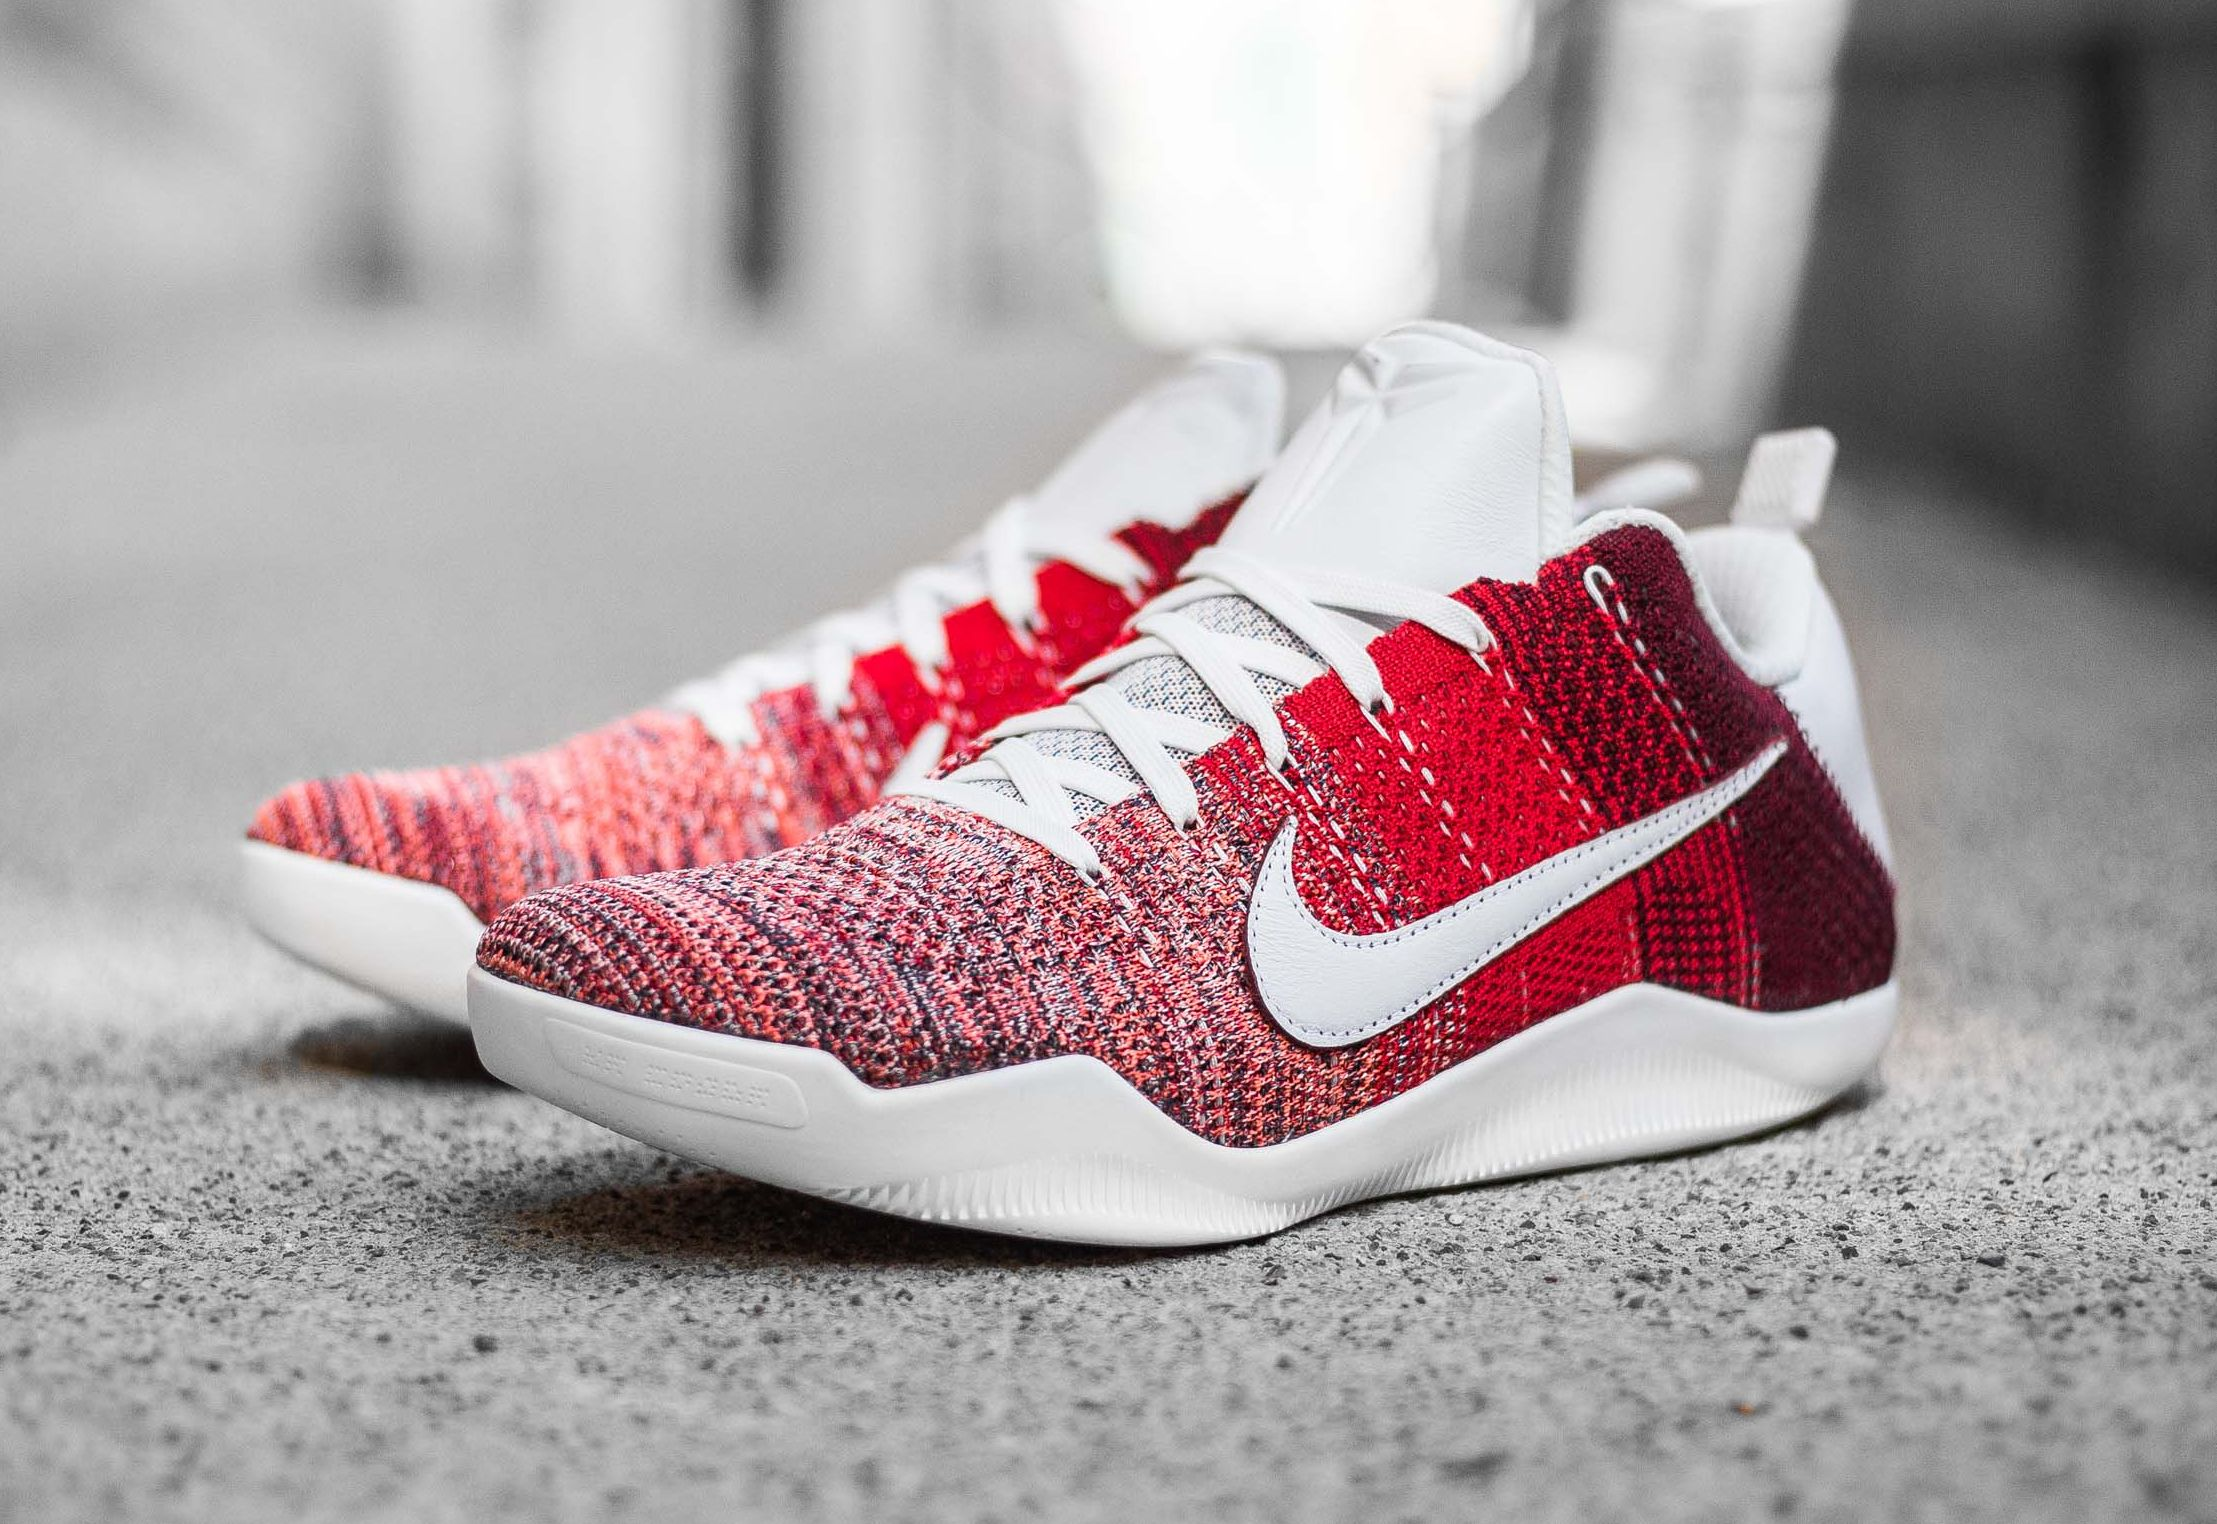 revendeur be3bf 3a12a Nike Kobe 11 Elite Flyknit Low 4KB 'Red Horse' University ...